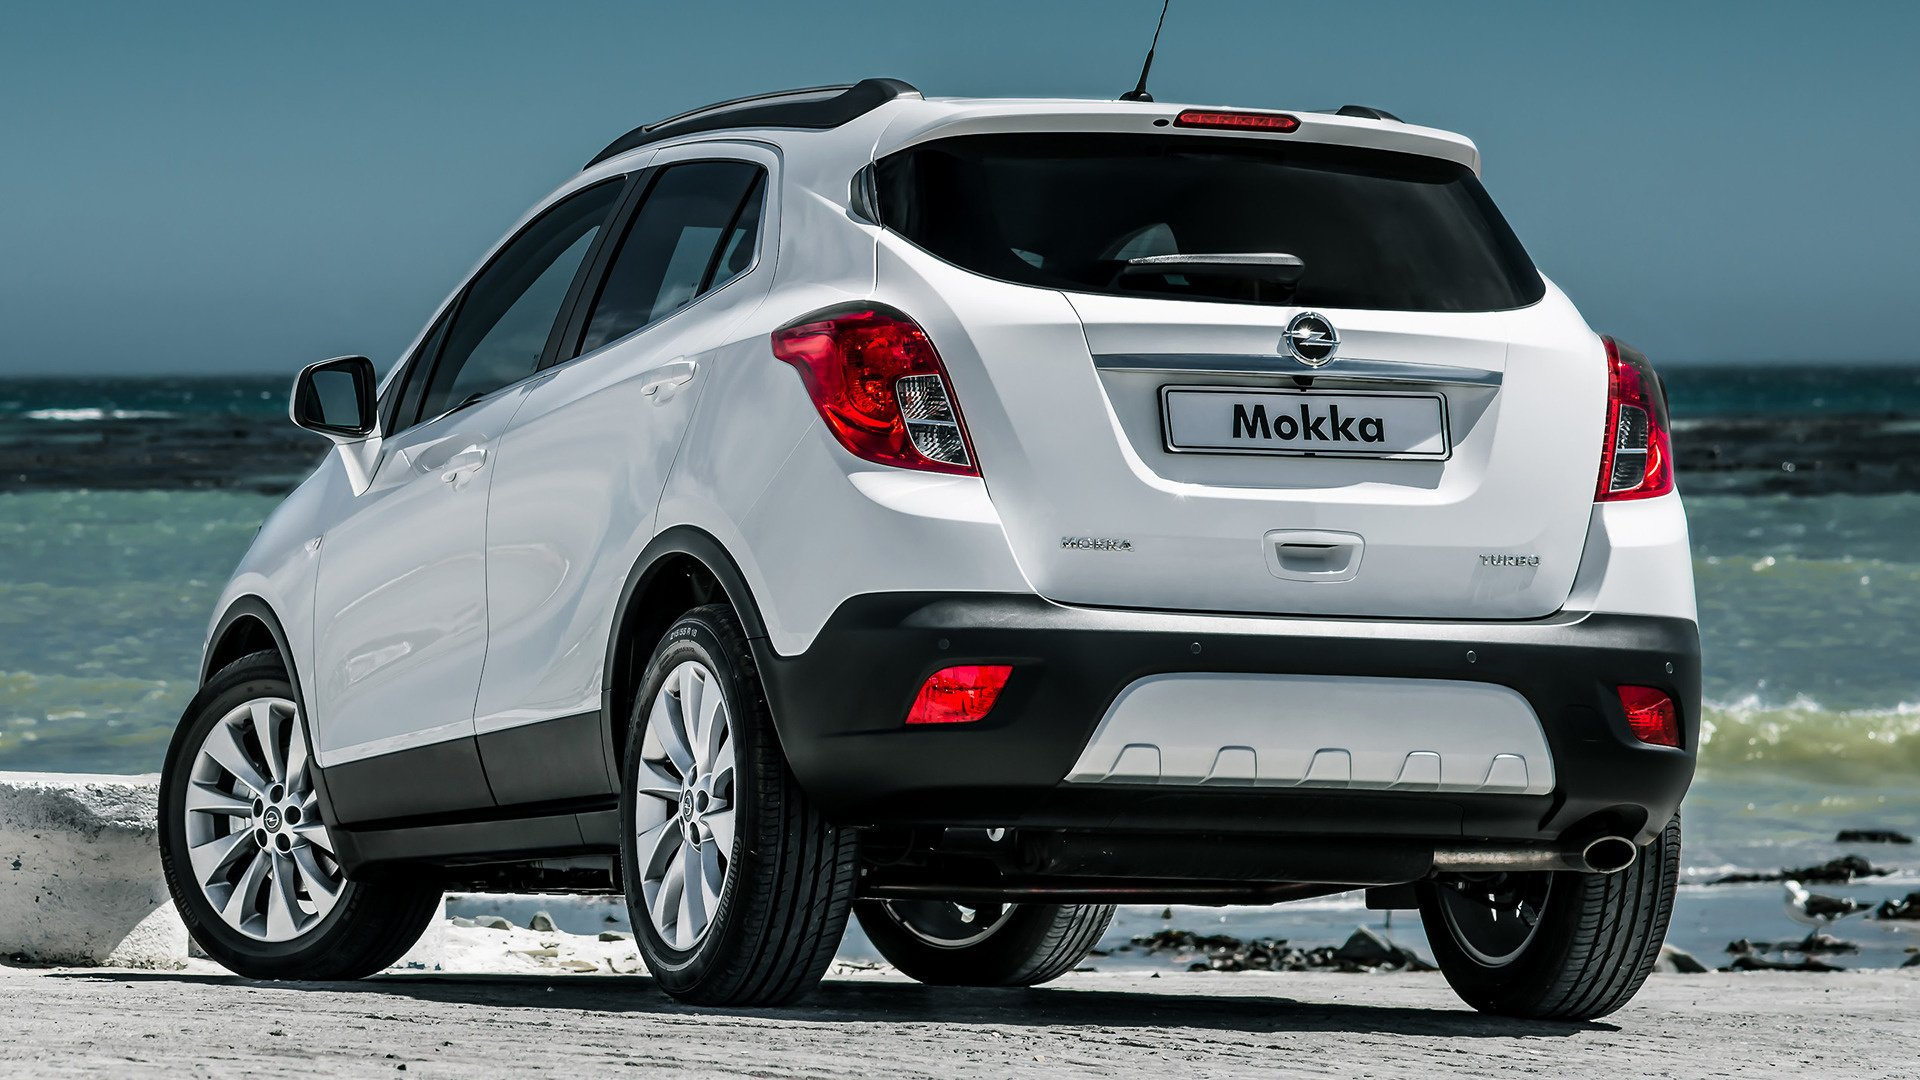 6 Opel Mokka Turbo Hd Wallpapers Background Images Wallpaper Abyss